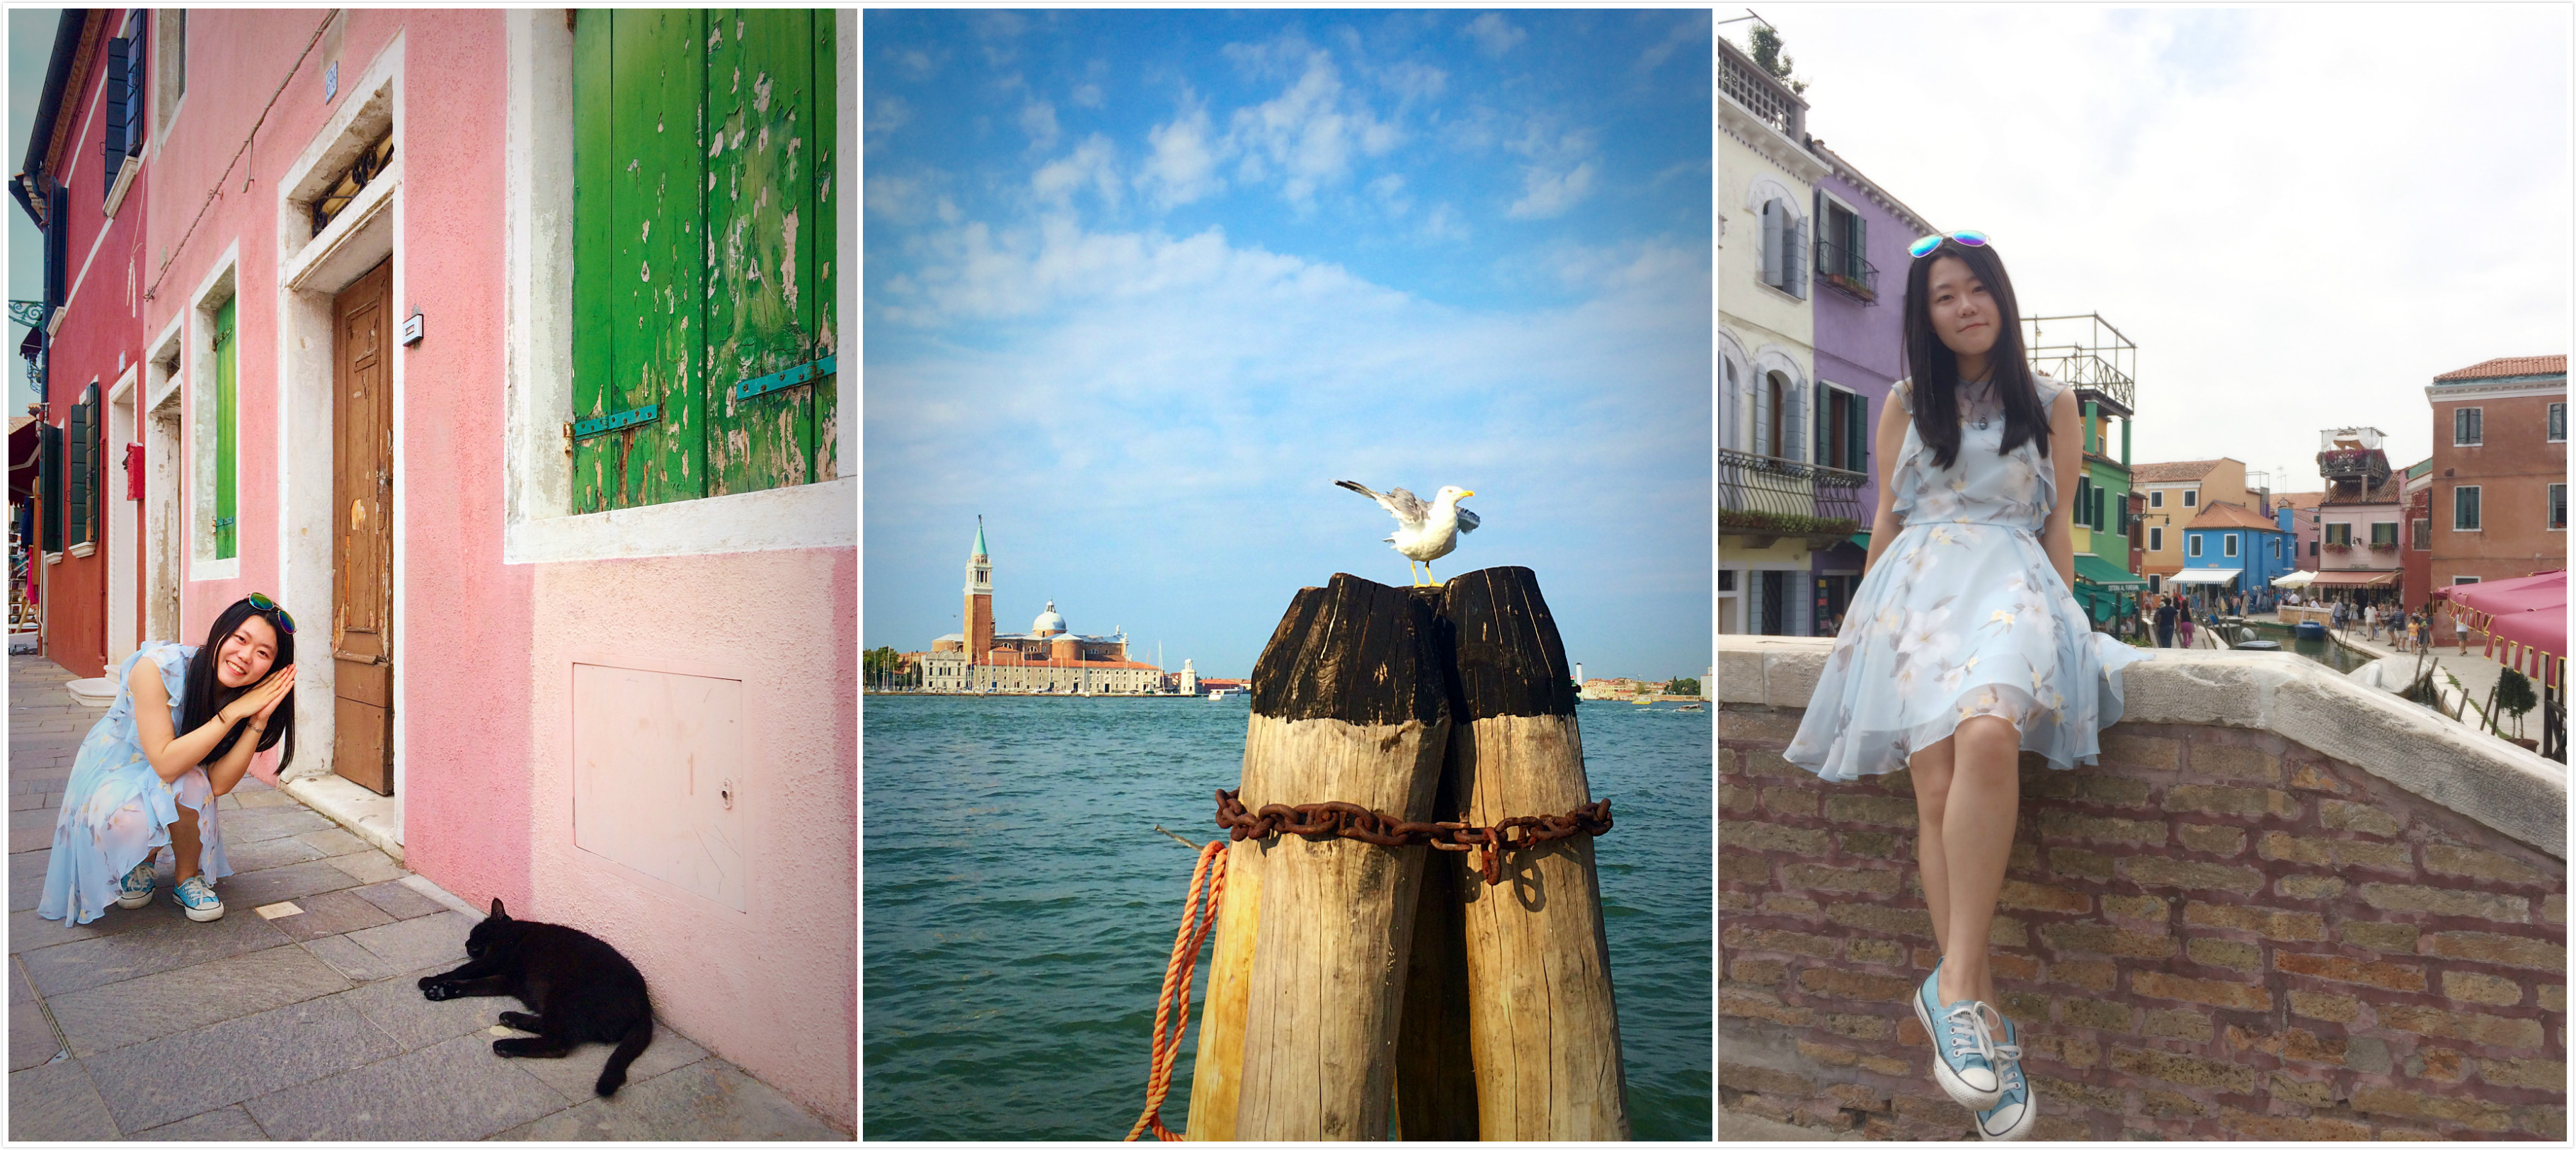 Photos taken in Venice, Italy